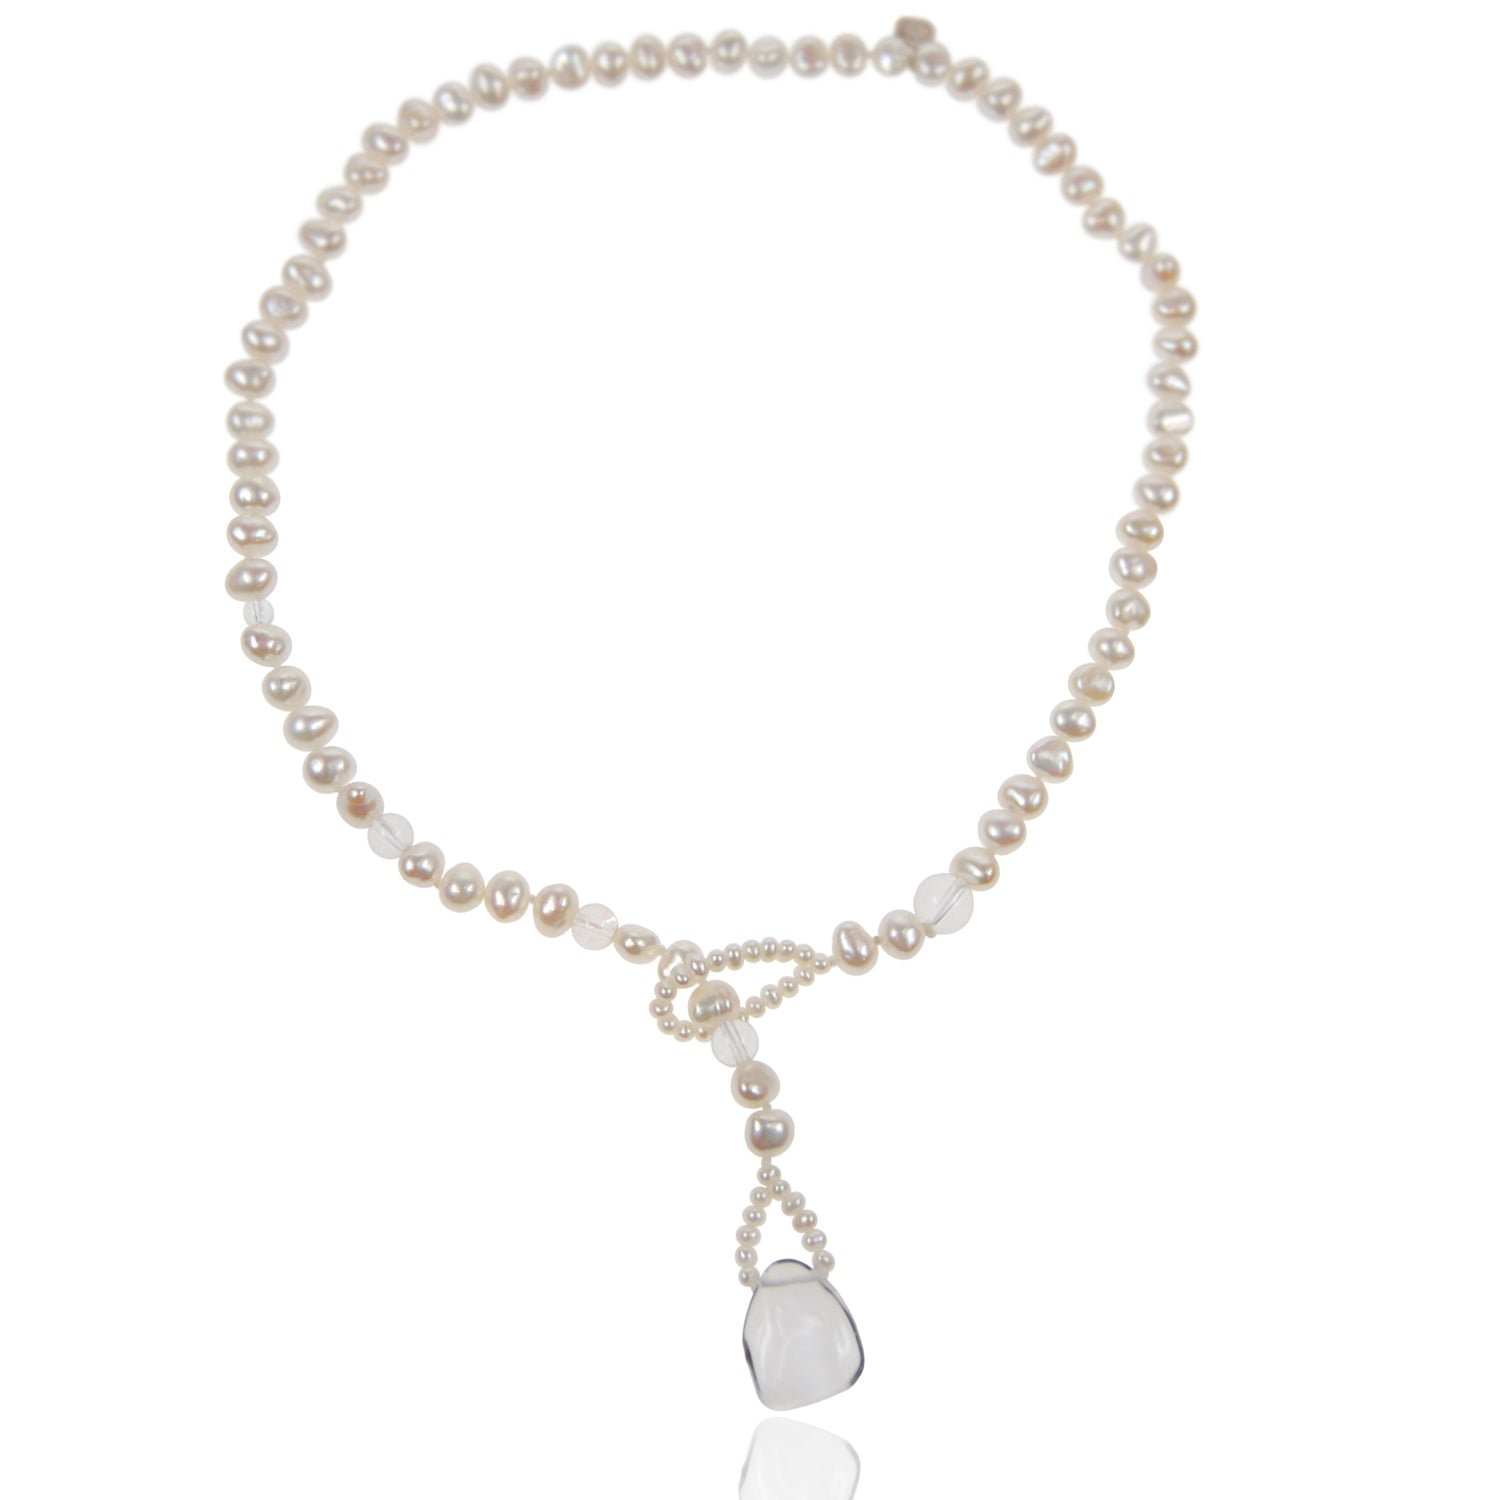 Biwa Pearl and Rock Crystal Short Lasso Necklace in White